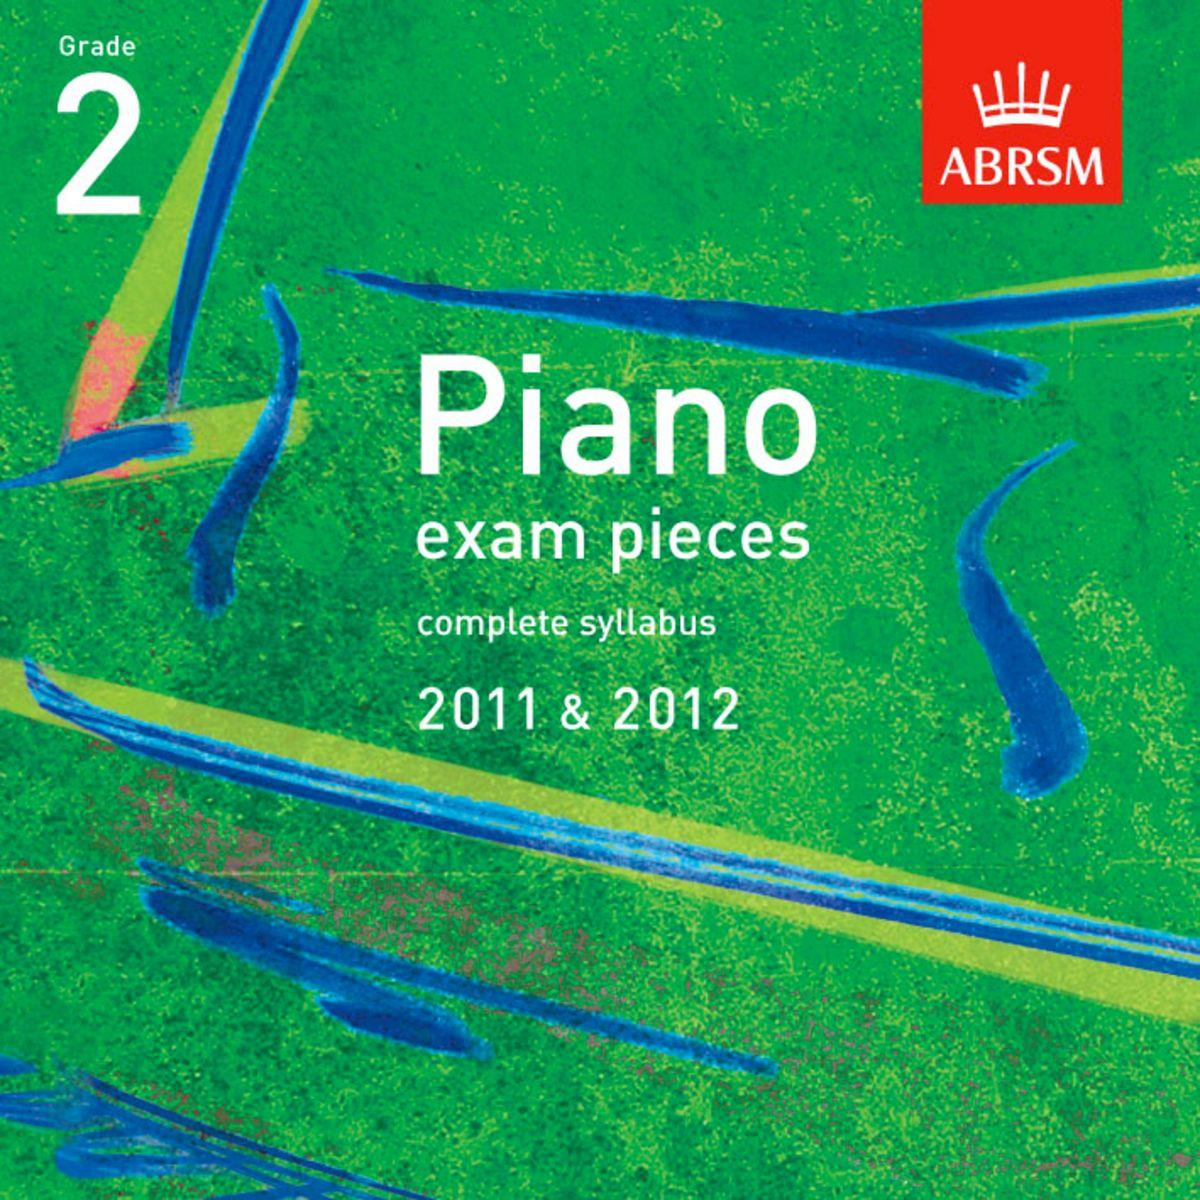 Piano Exam Pieces Grade 2 2011-2012 (CD)